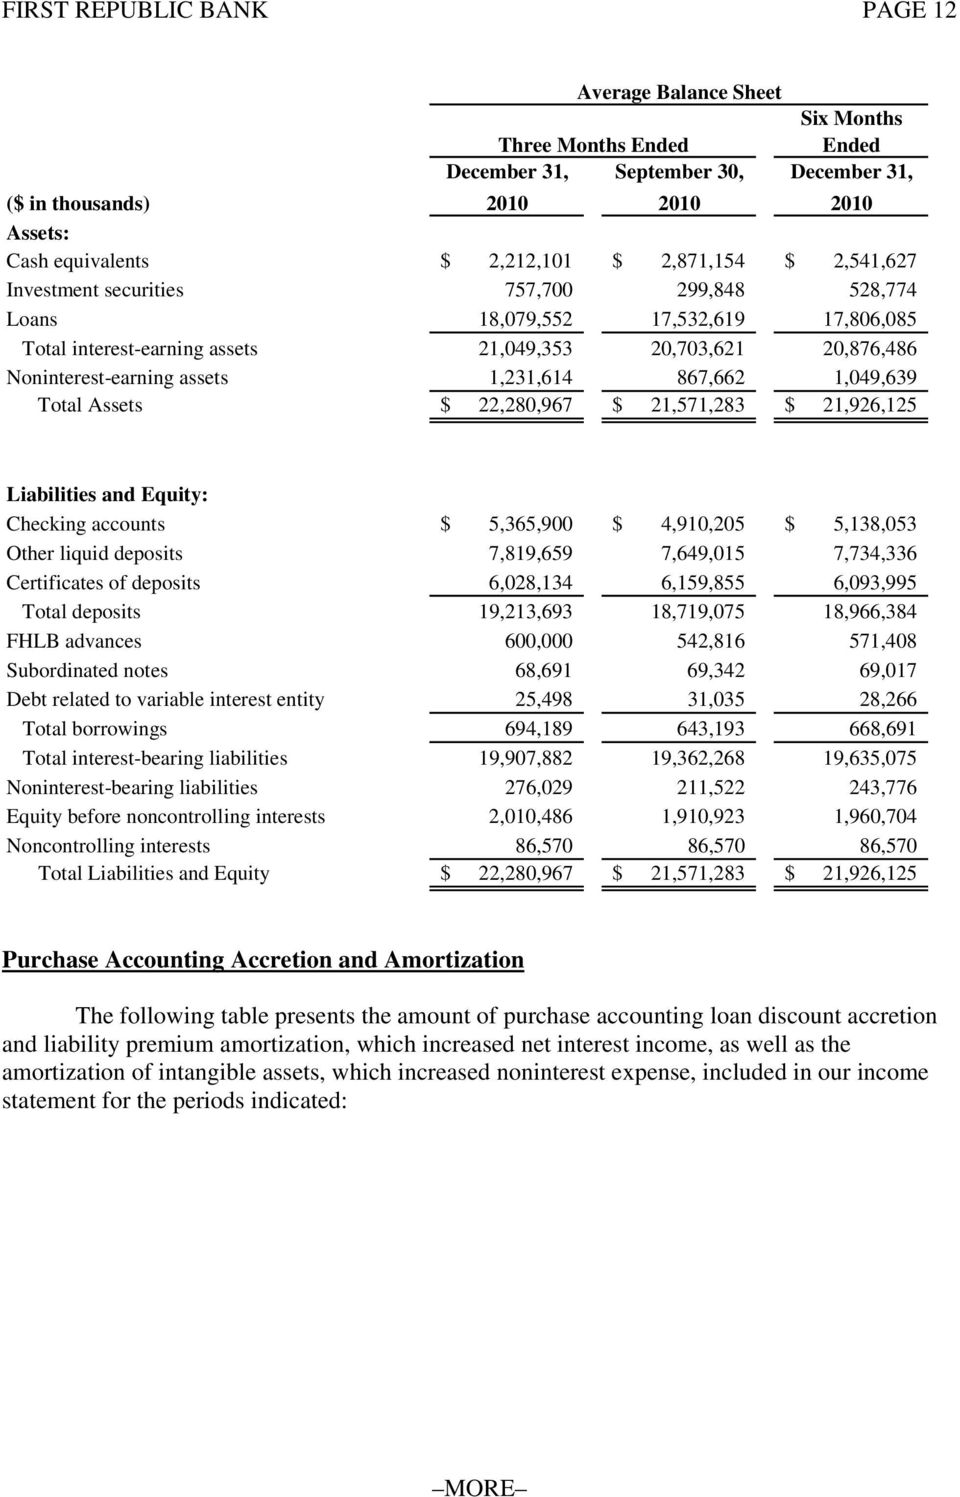 Assets $ 22,280,967 $ 21,571,283 $ 21,926,125 Liabilities and Equity: Checking accounts $ 5,365,900 $ 4,910,205 $ 5,138,053 Other liquid deposits 7,819,659 7,649,015 7,734,336 Certificates of